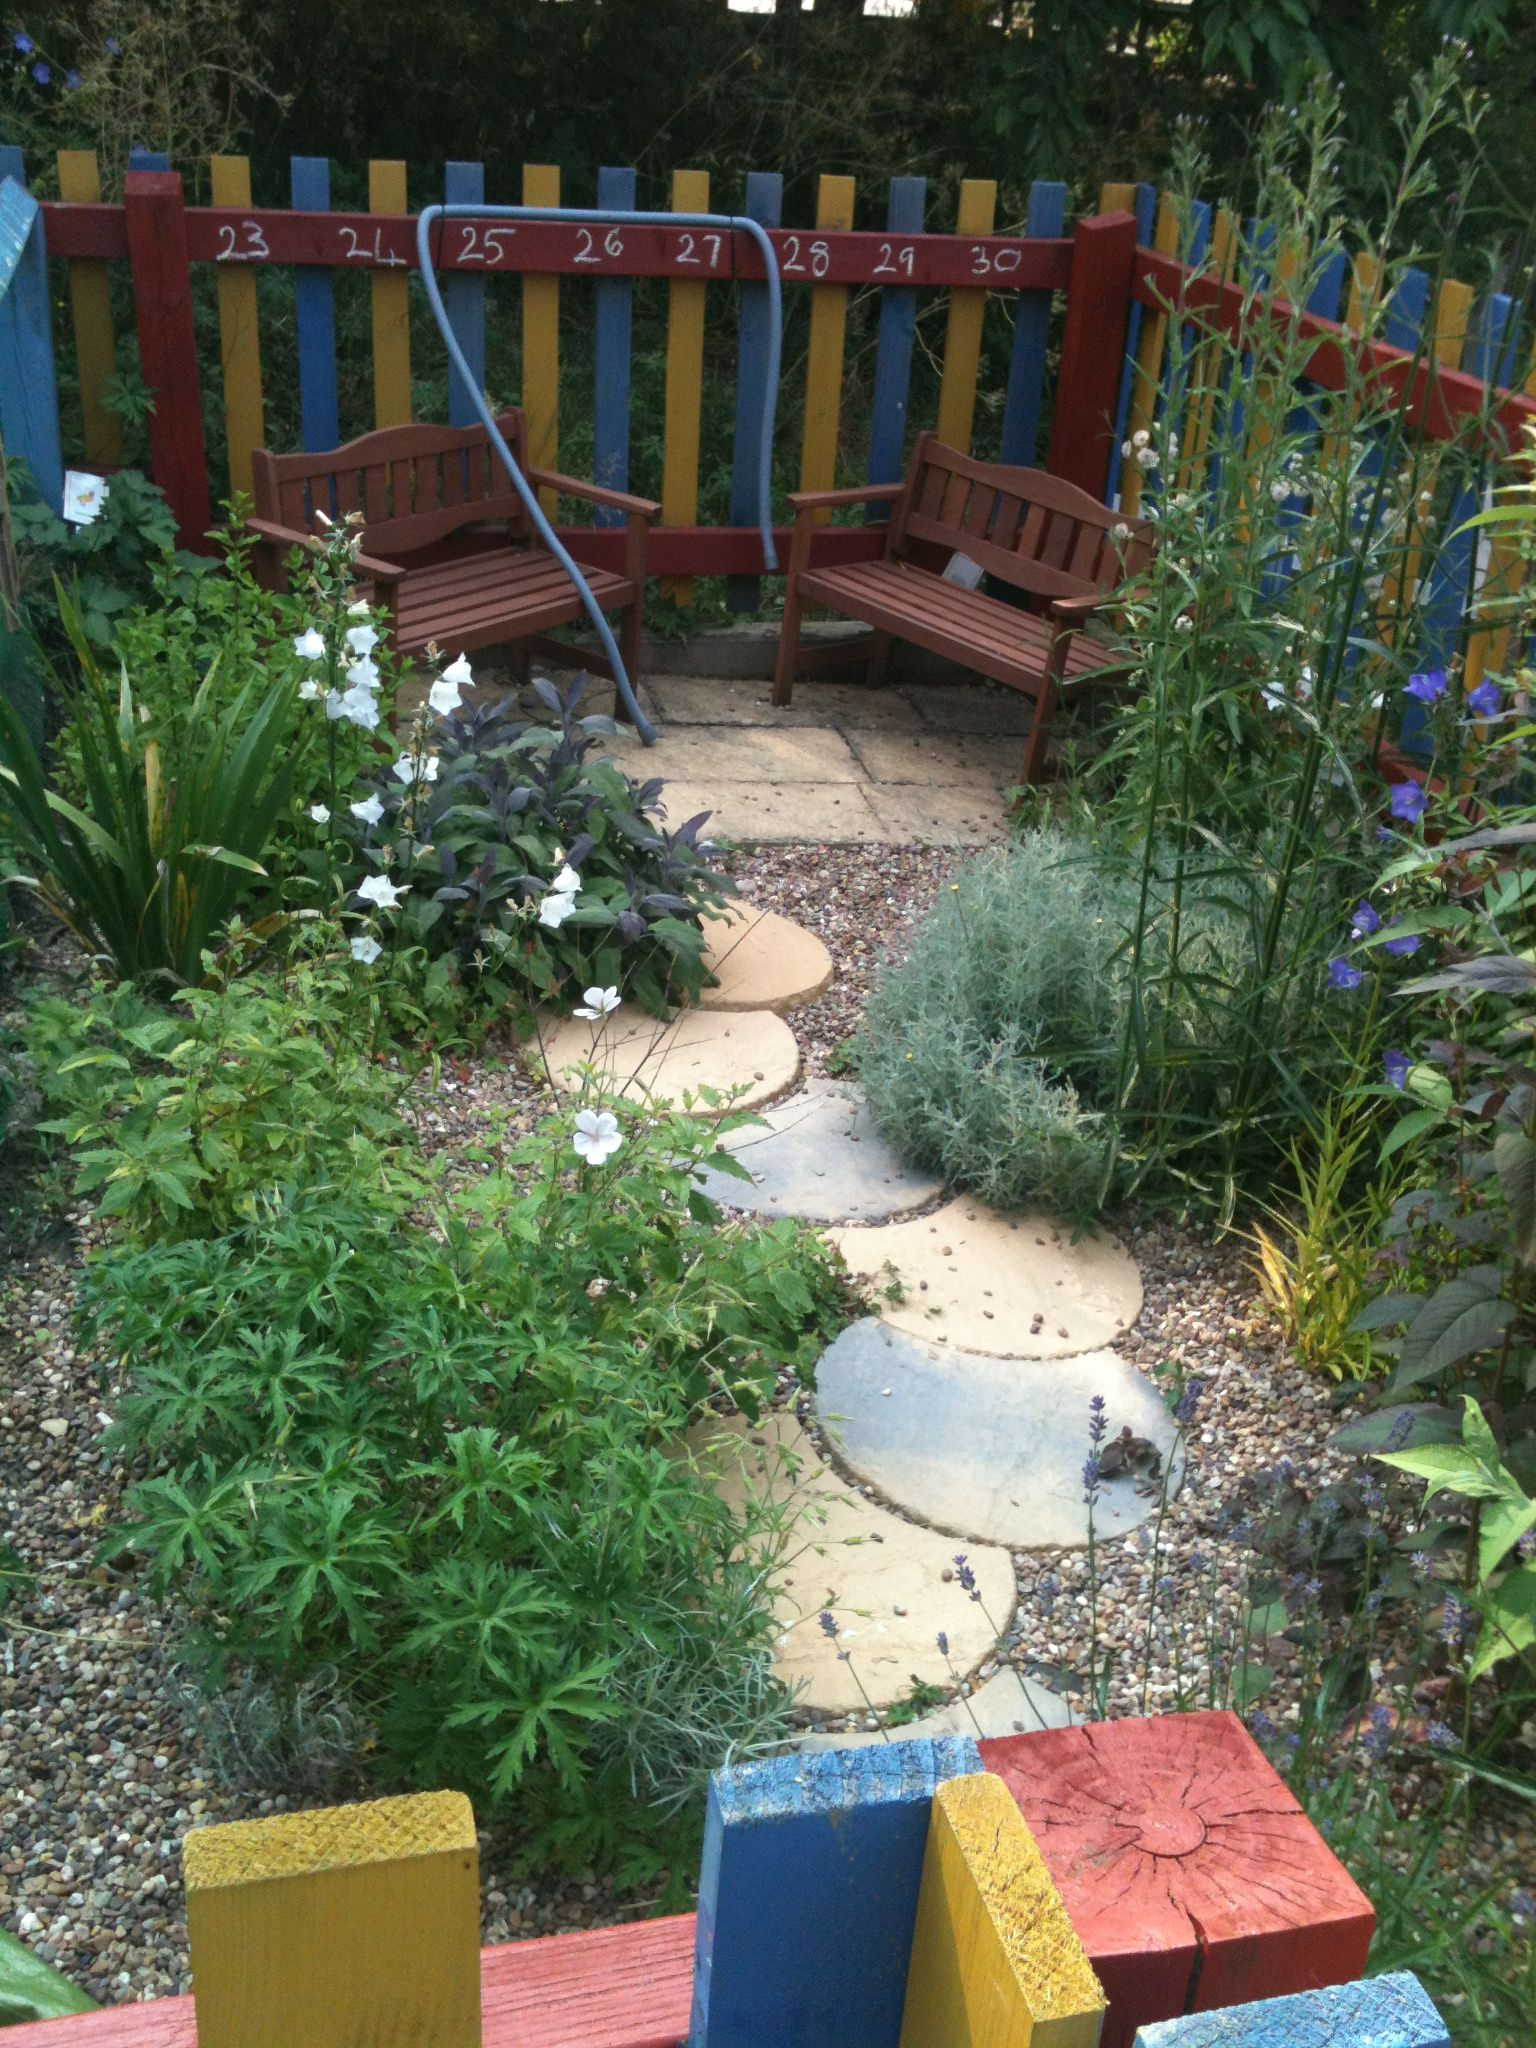 Sensory garden with caterpillar path, benches and speaking ...